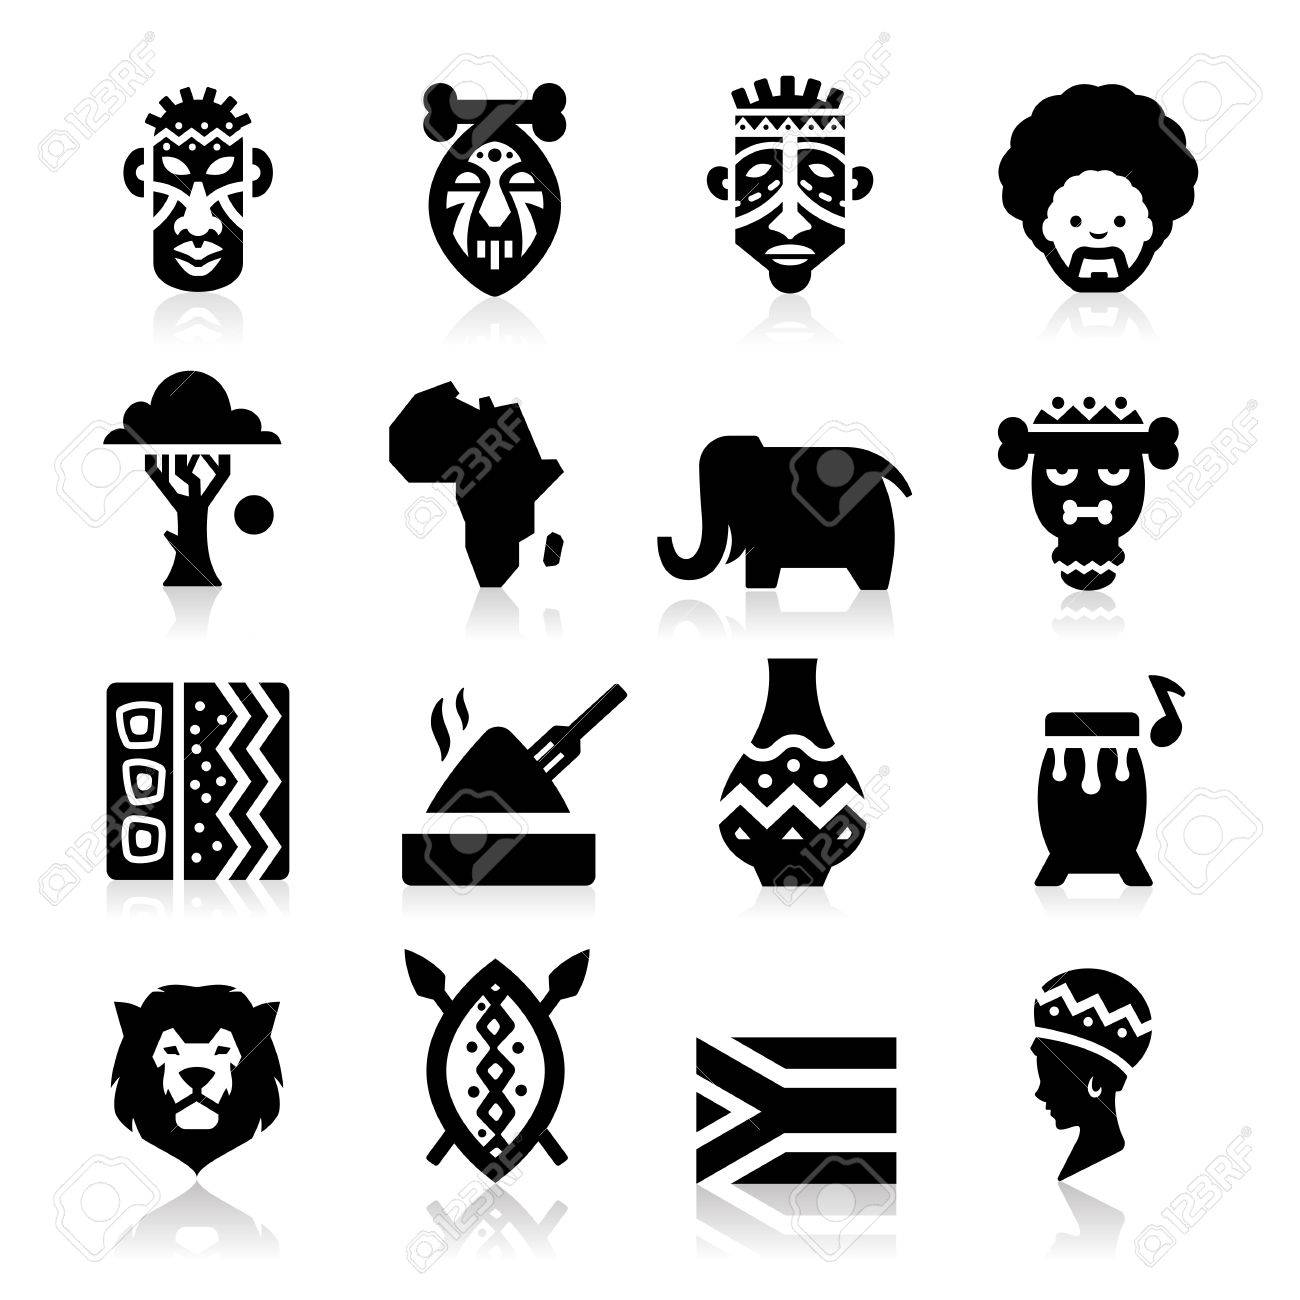 South african culture images stock pictures royalty free south african icons illustration buycottarizona